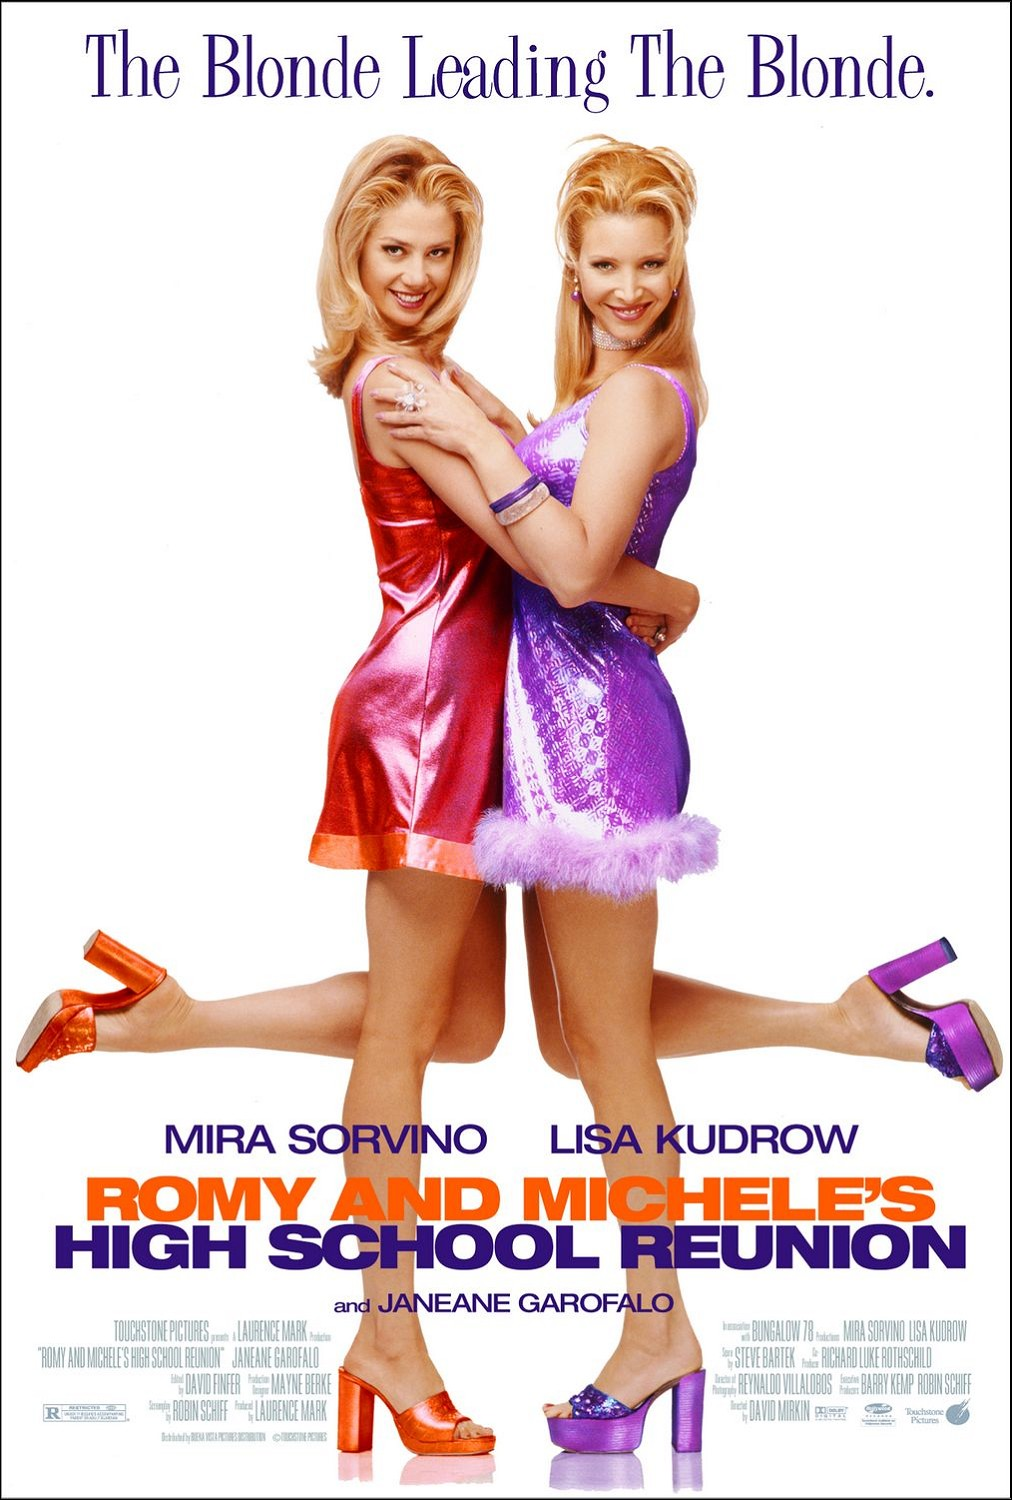 ROMY AND MICHELE'S HIGH SCHOOL REUNION - as part of 'Diamonds In The Sky'